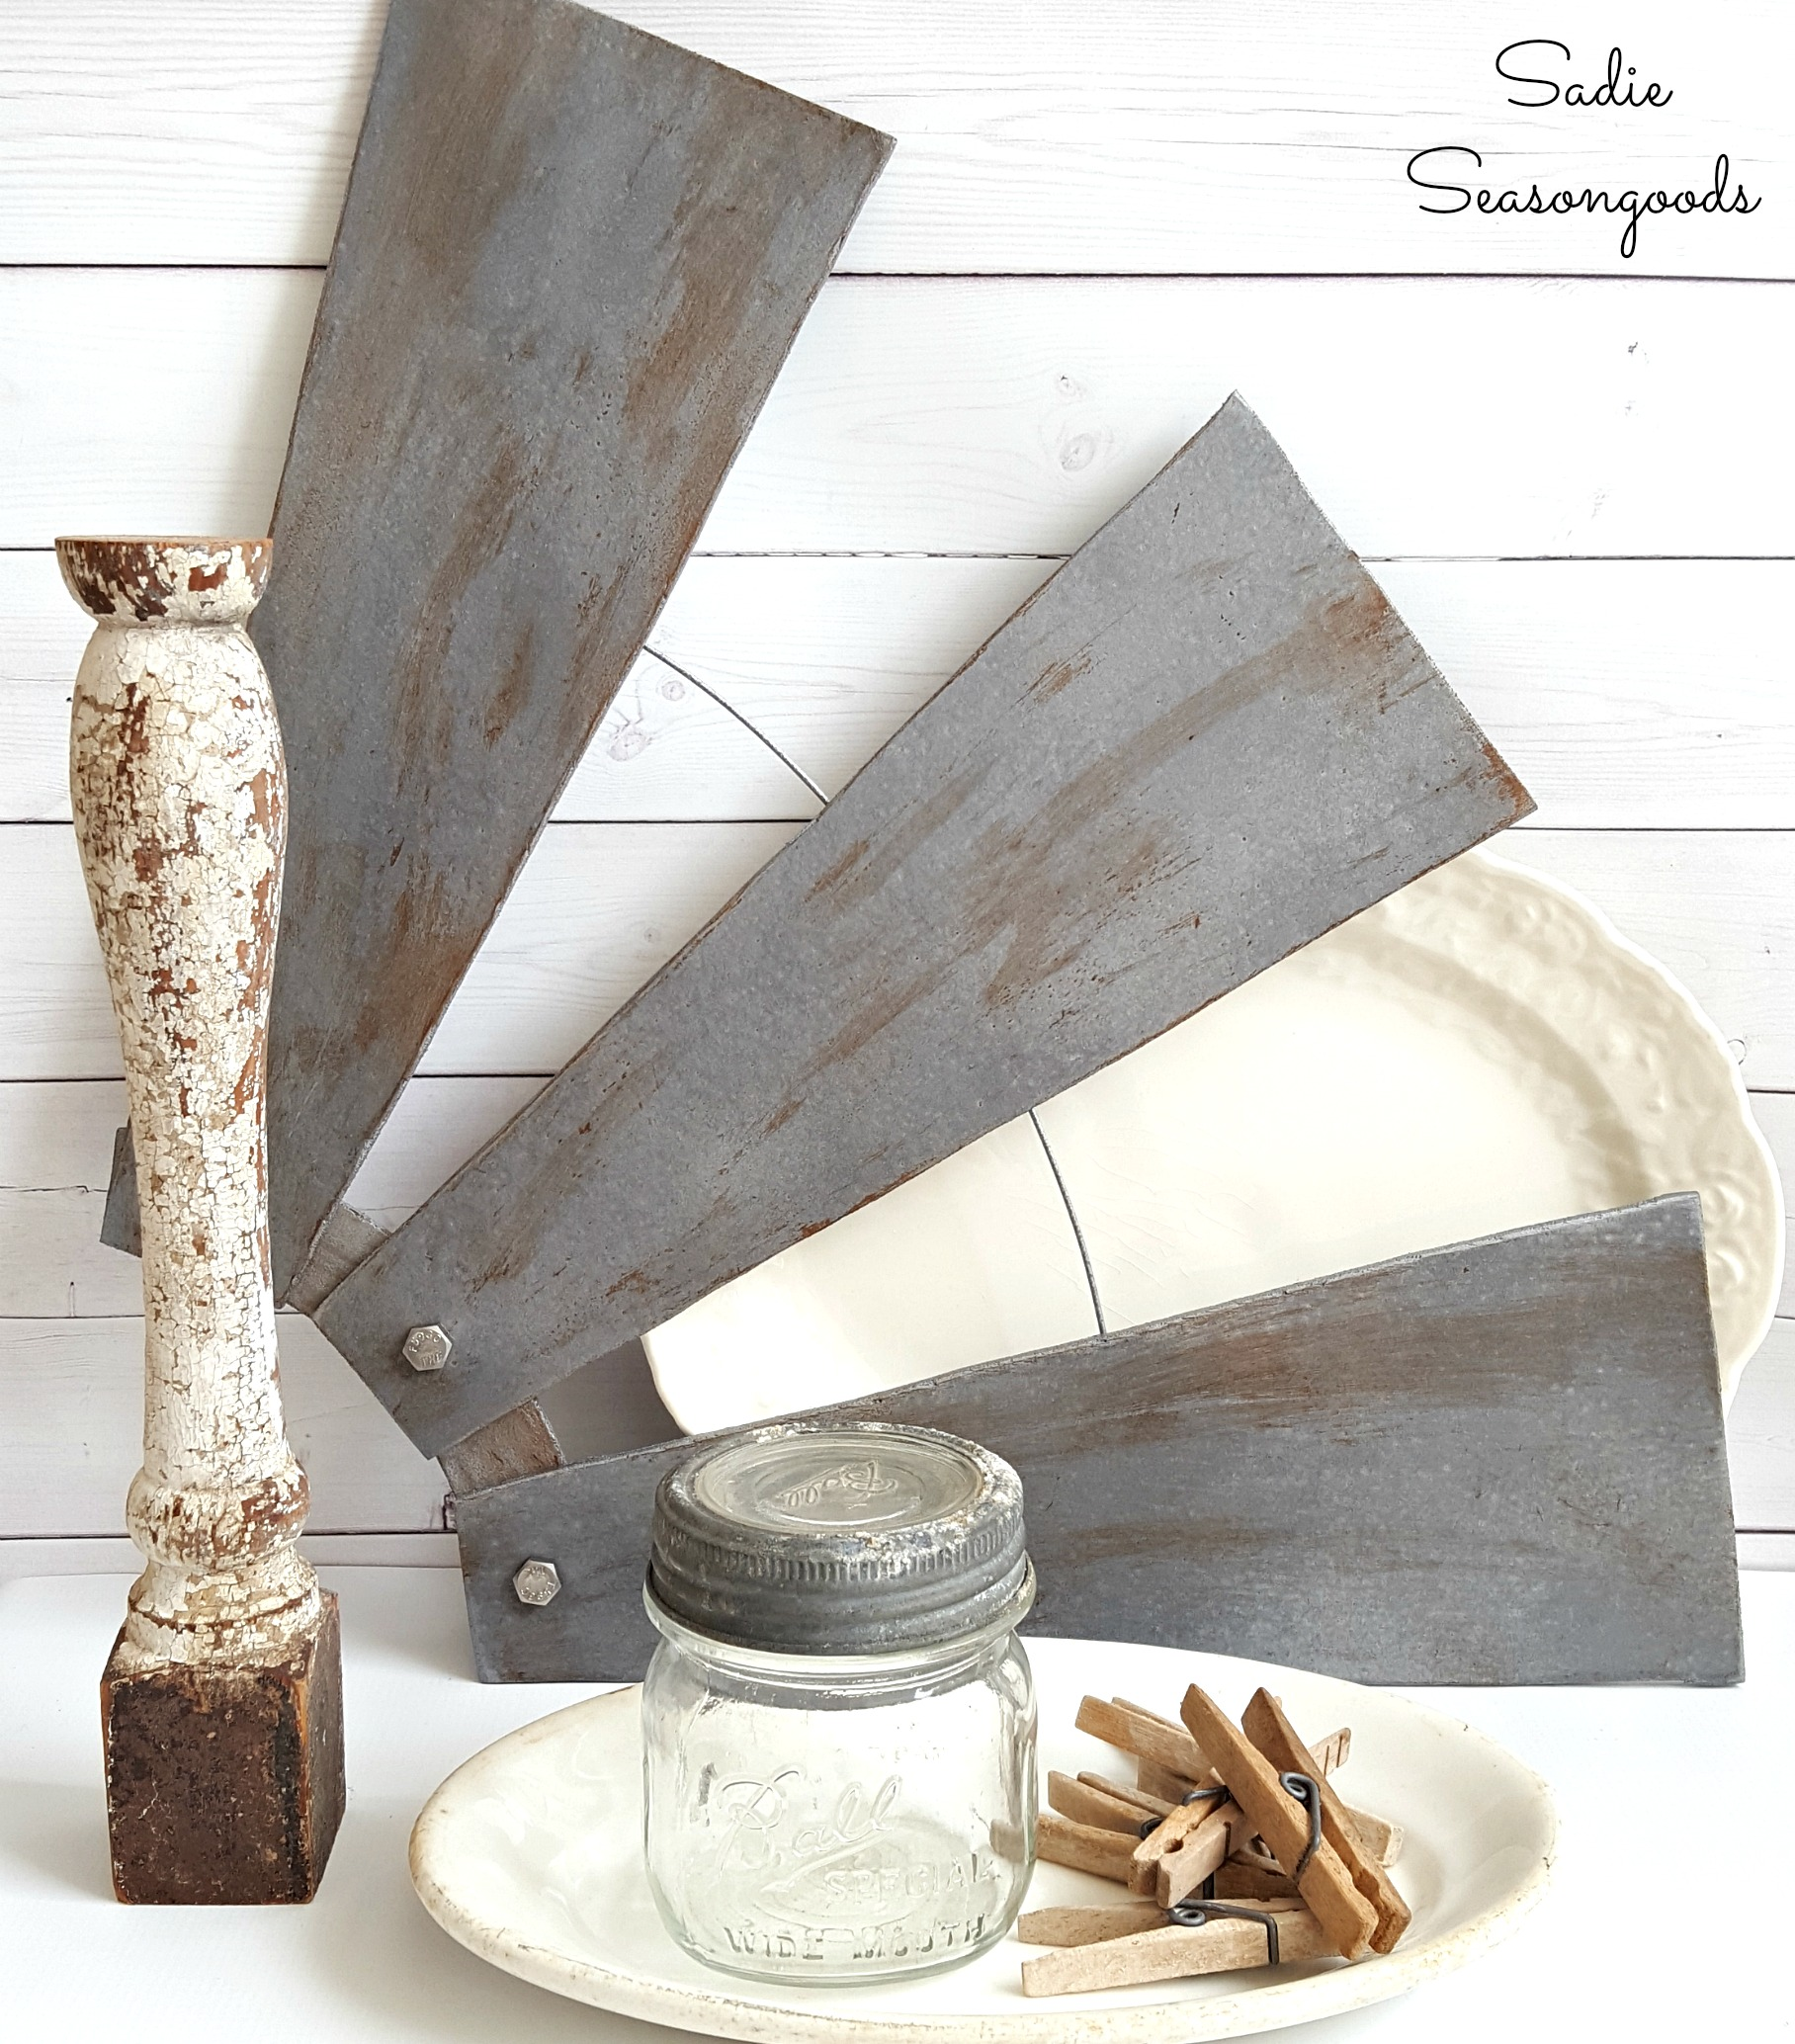 Farmhouse wall decor or windmill wall decor from ceiling fan blades by Sadie Seasongoods